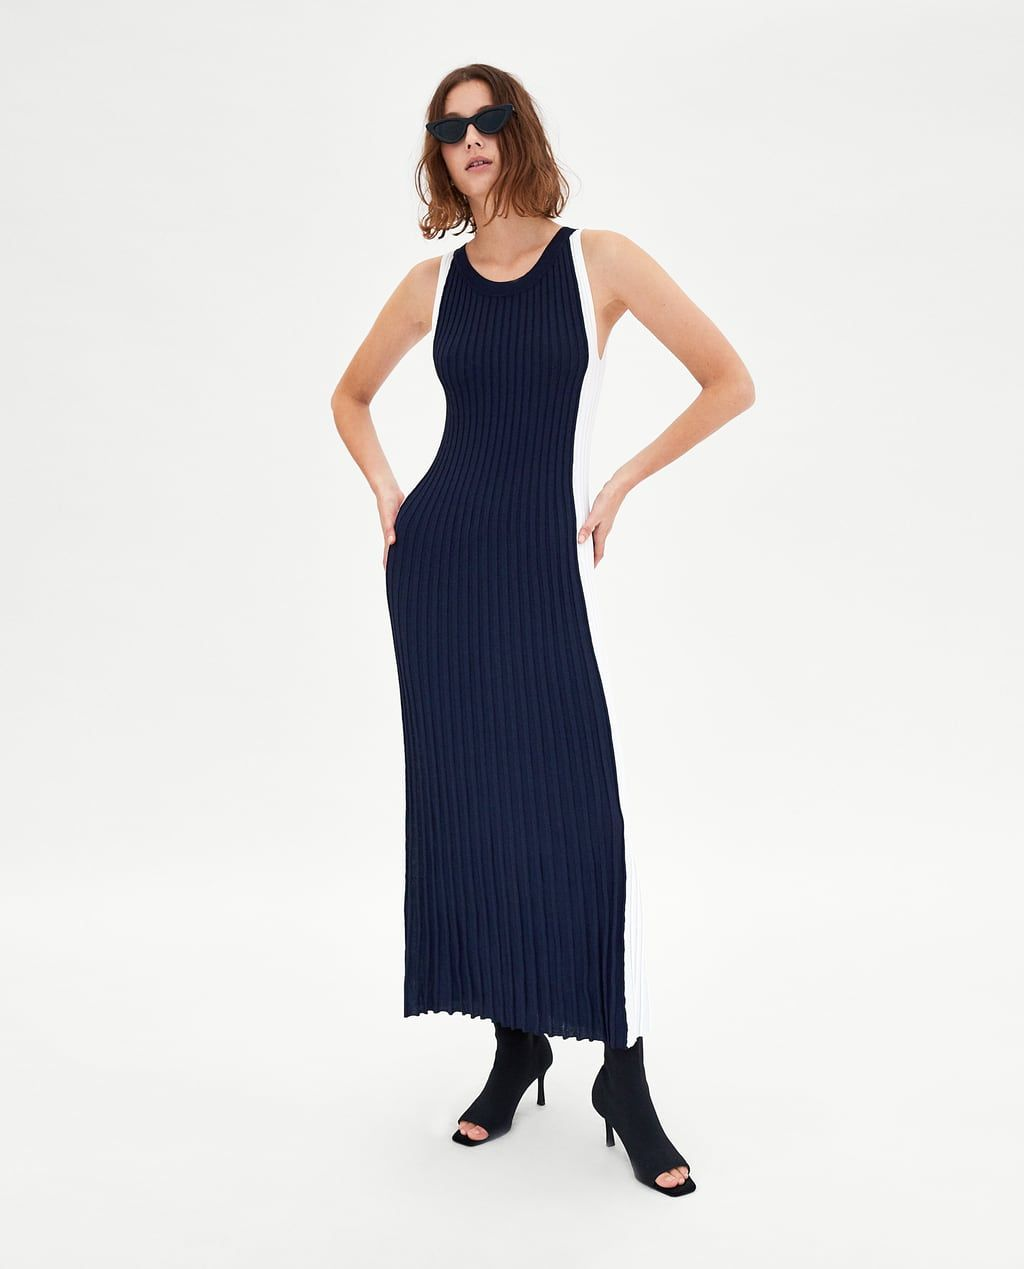 ZARA - WOMAN - LONG TWO-TONE DRESS  Modestil, Overall kleid, Zara